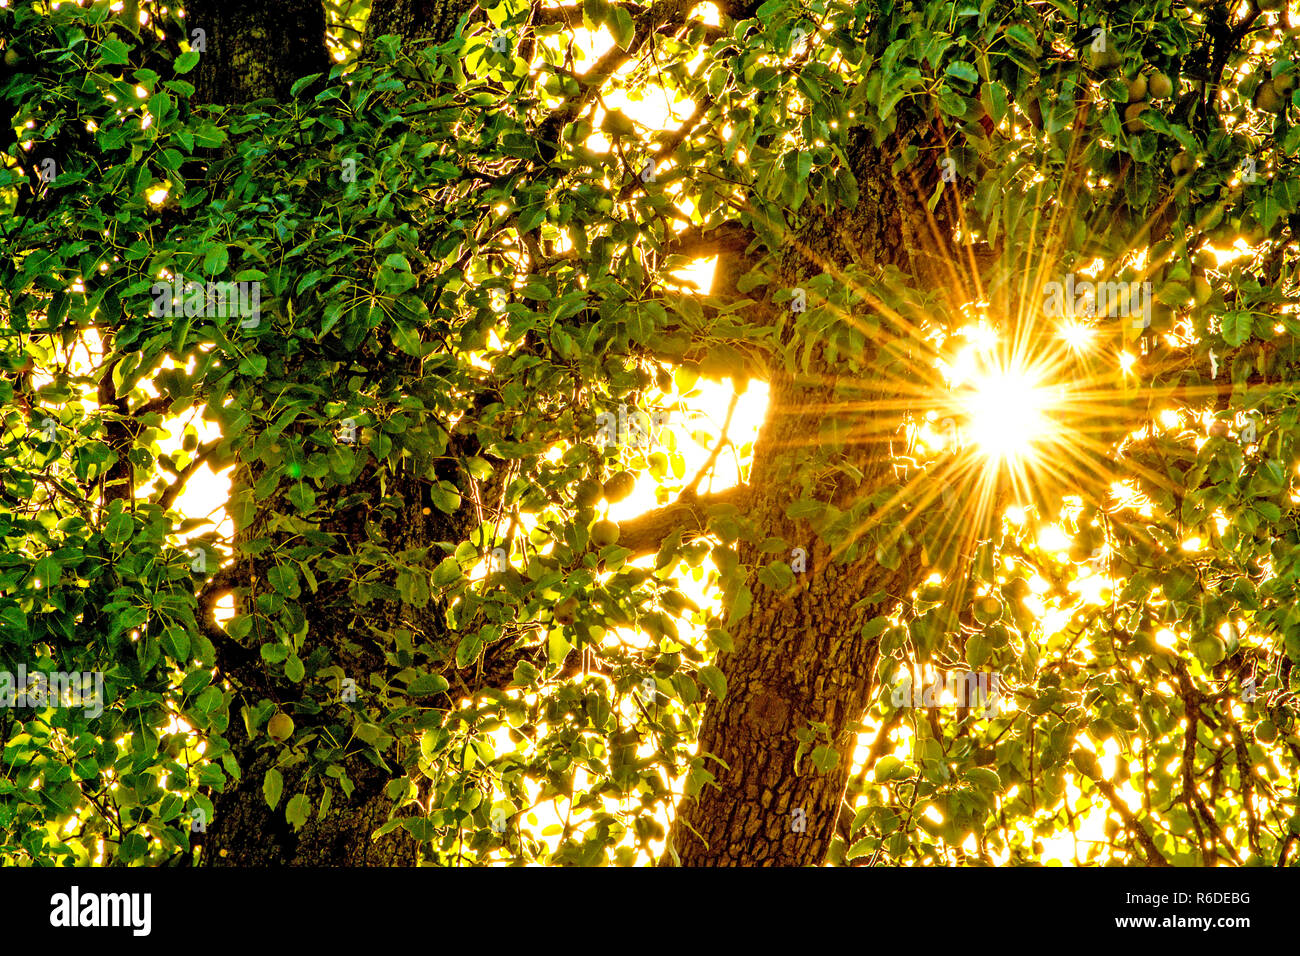 Sun Shines Through A Foliage Roof In The Back Light - Stock Image